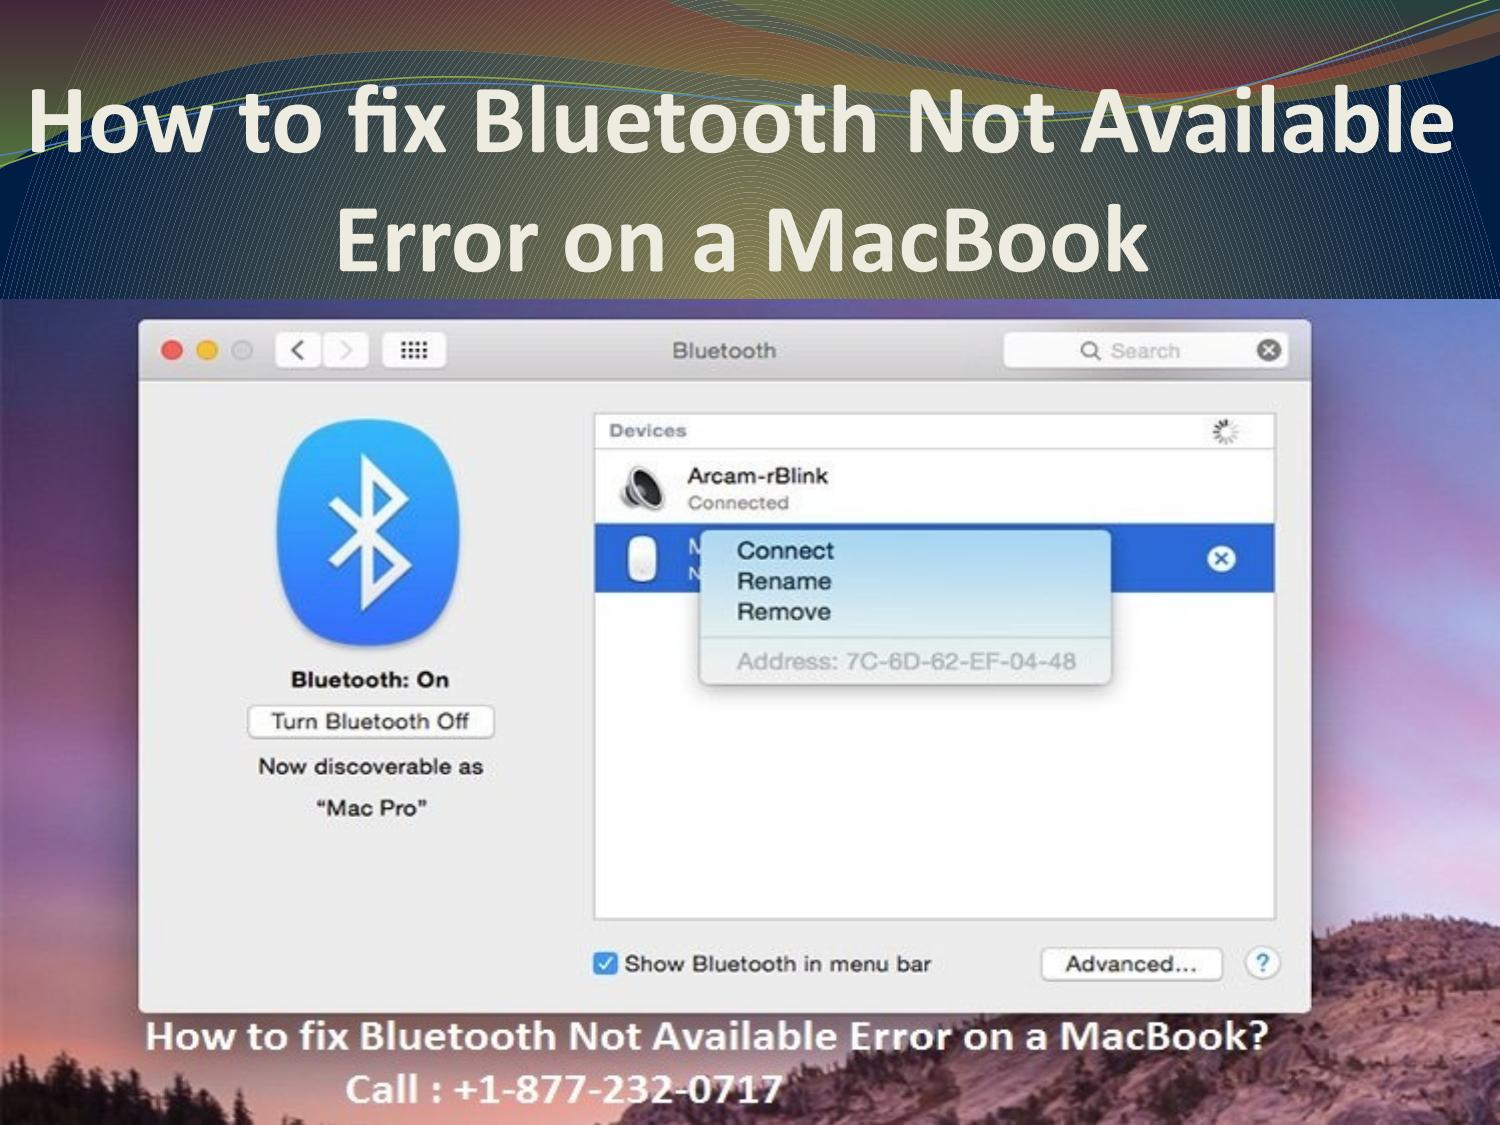 How to fix bluetooth not available error on macbook by Mac Tech